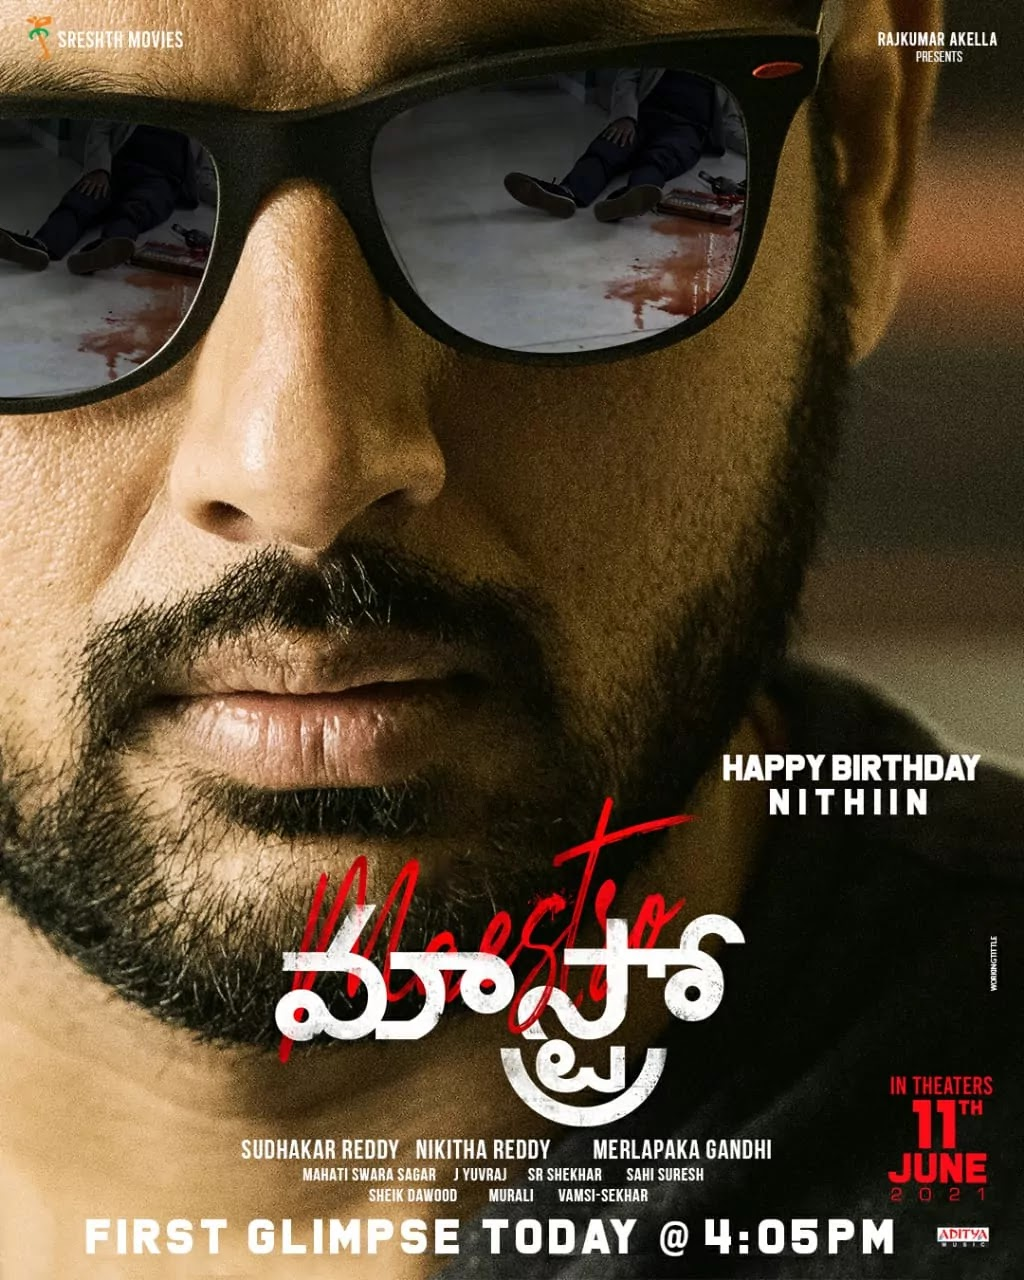 Hero Nitin experiments with Yatra Director